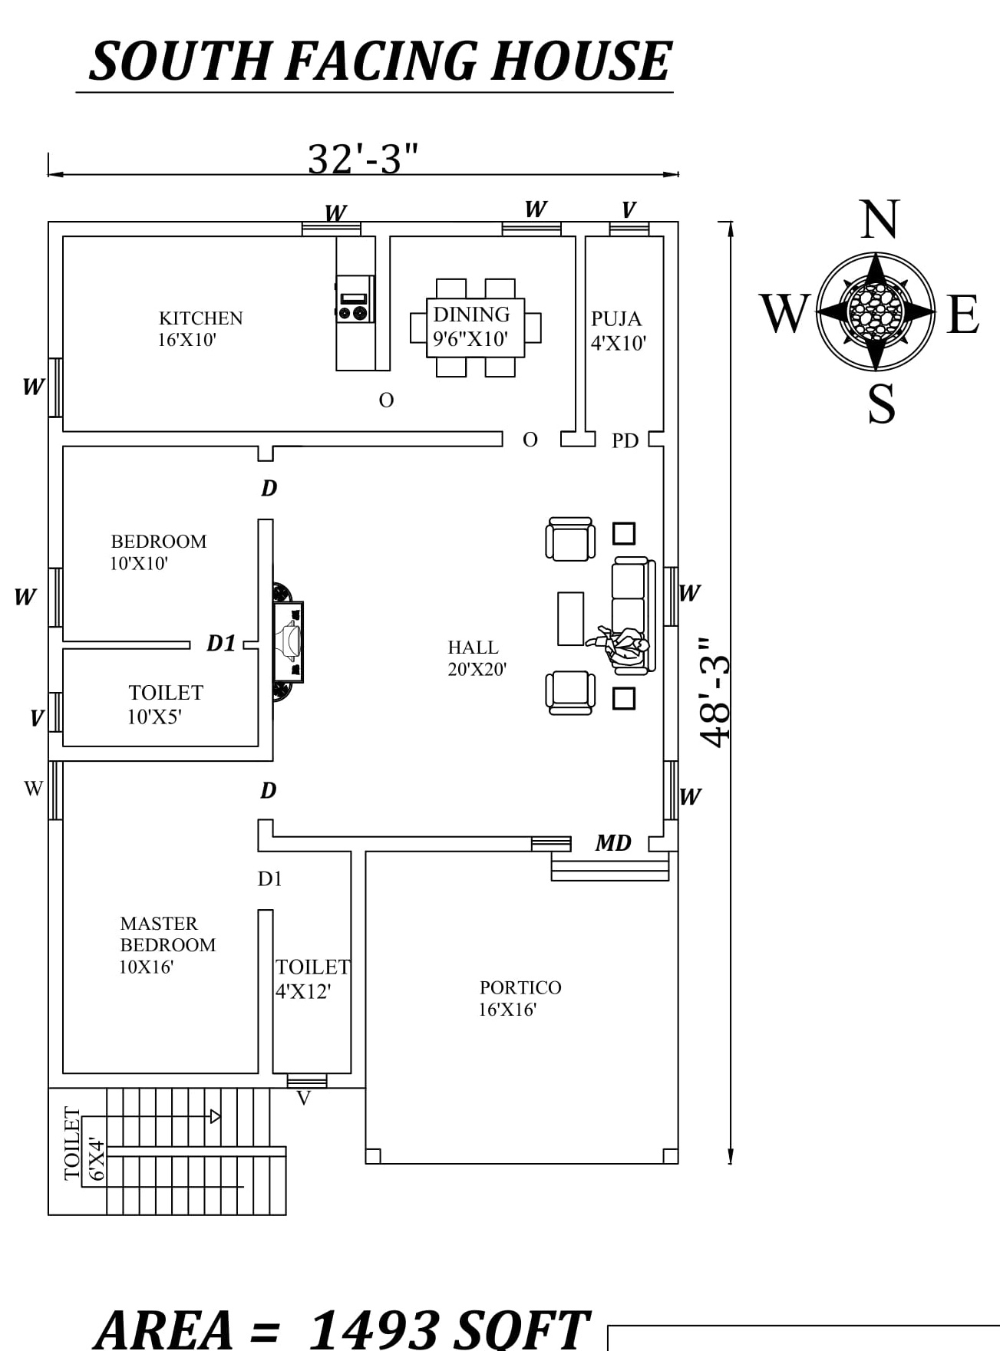 32 X48 Wonderful 2bhk South Facing House Plan As Per Vastu Shastra Autocad Dwg File Details Cadbull South Facing House 2bhk House Plan 20x40 House Plans